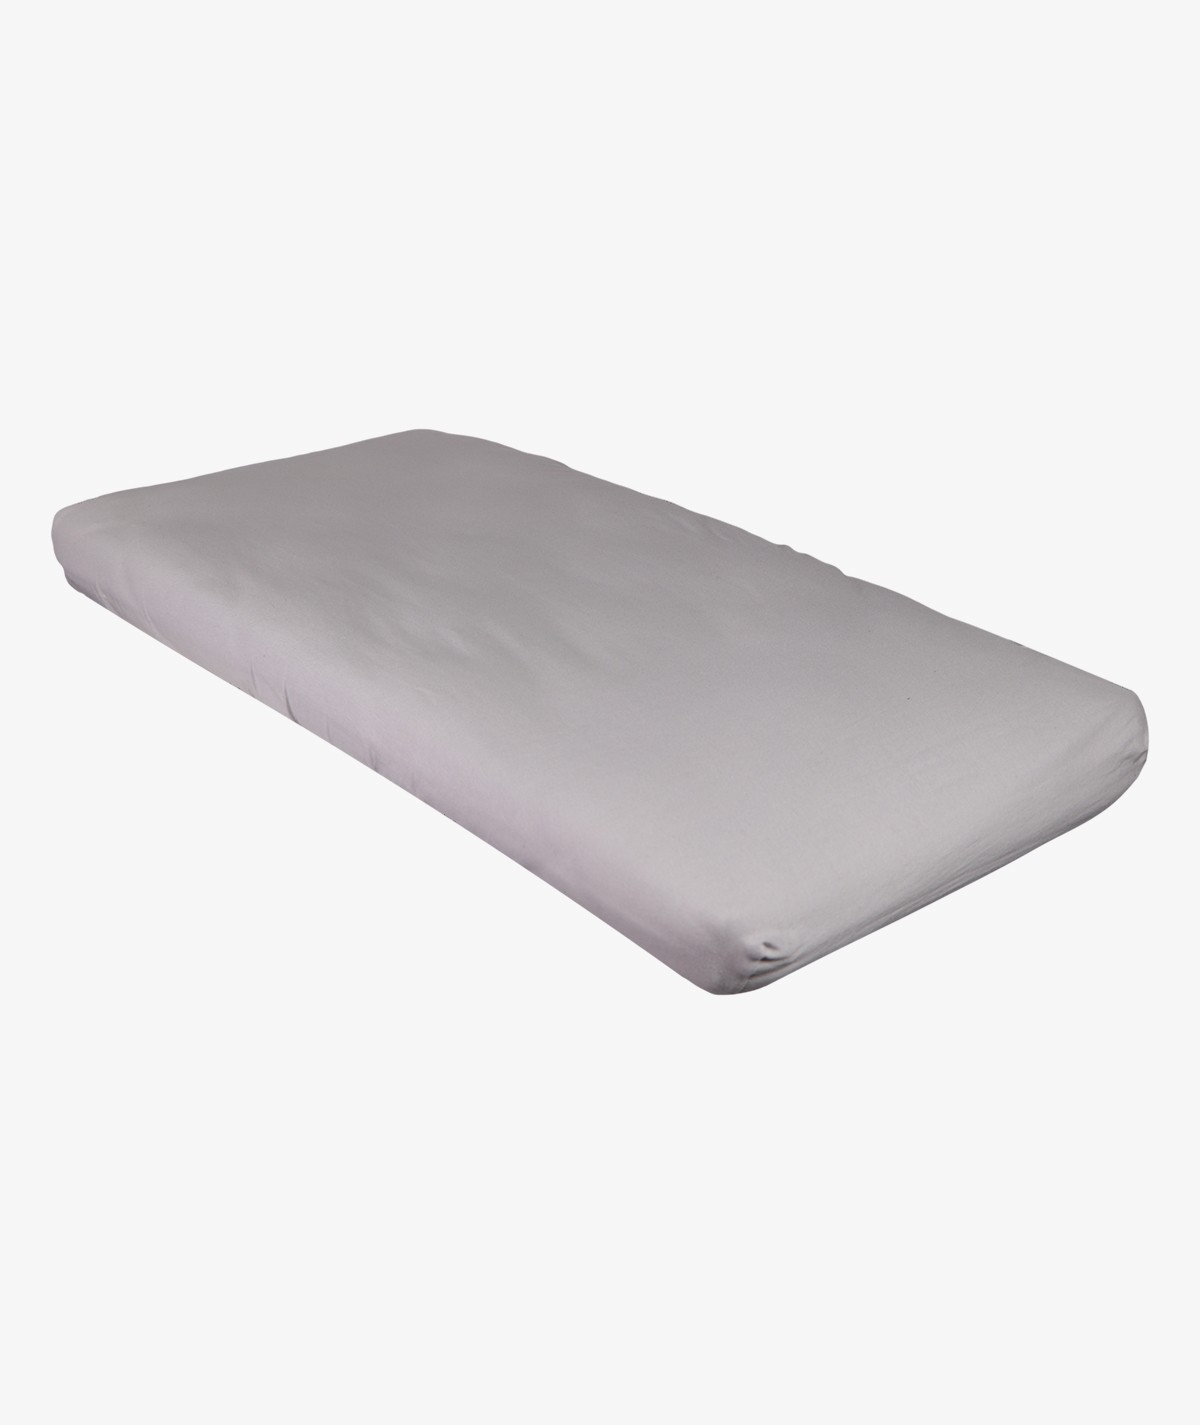 Fitted Sheet for Cot